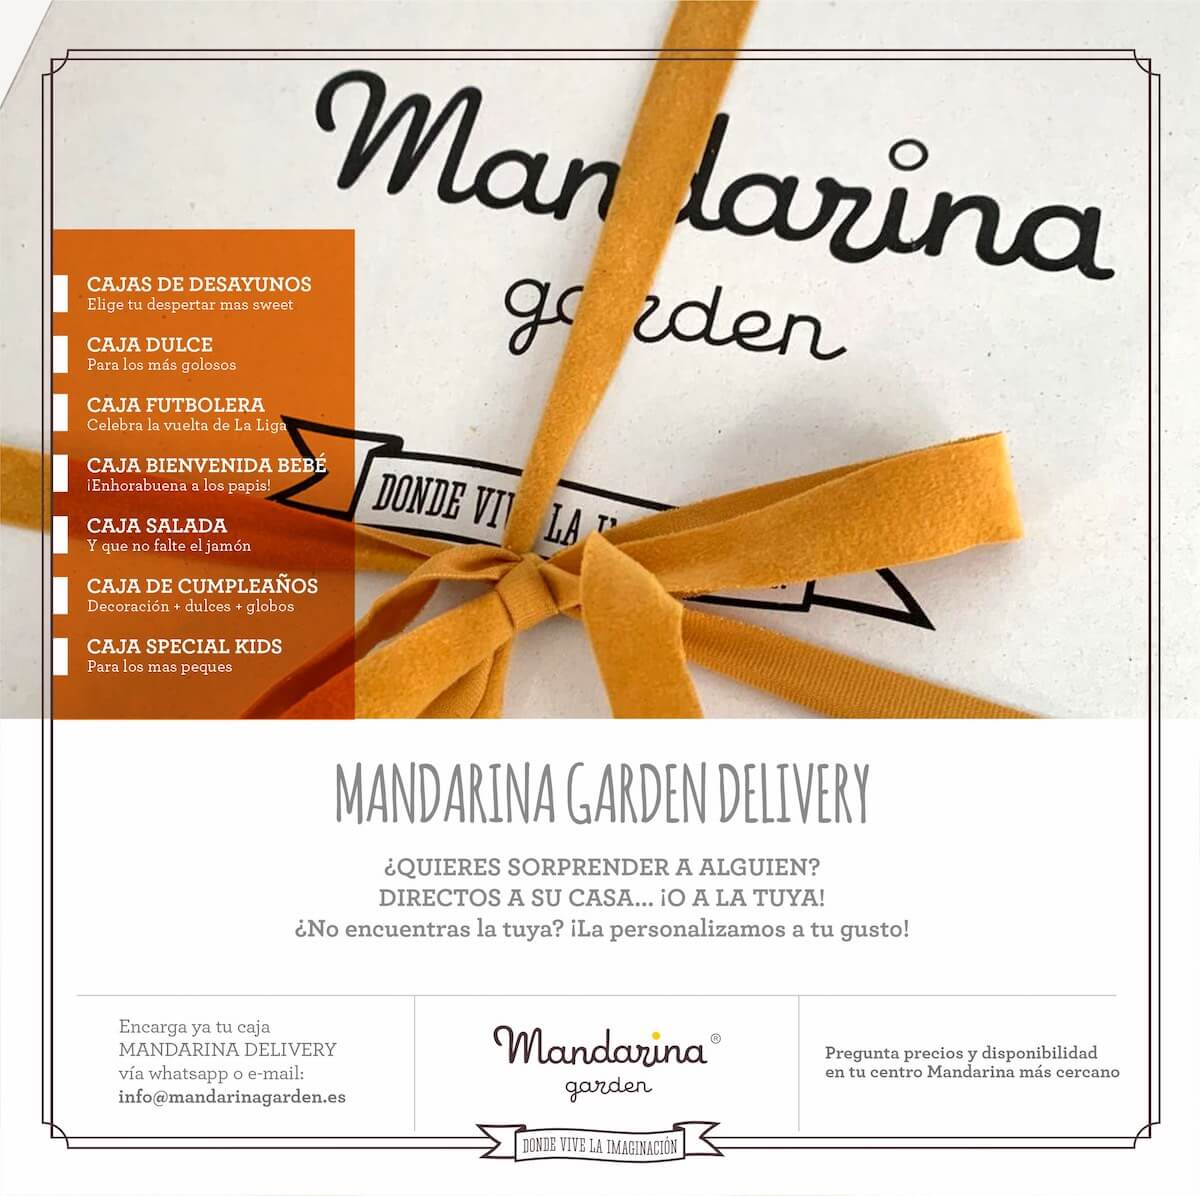 You have many ways to surprise with Mandarina garden surprise boxes